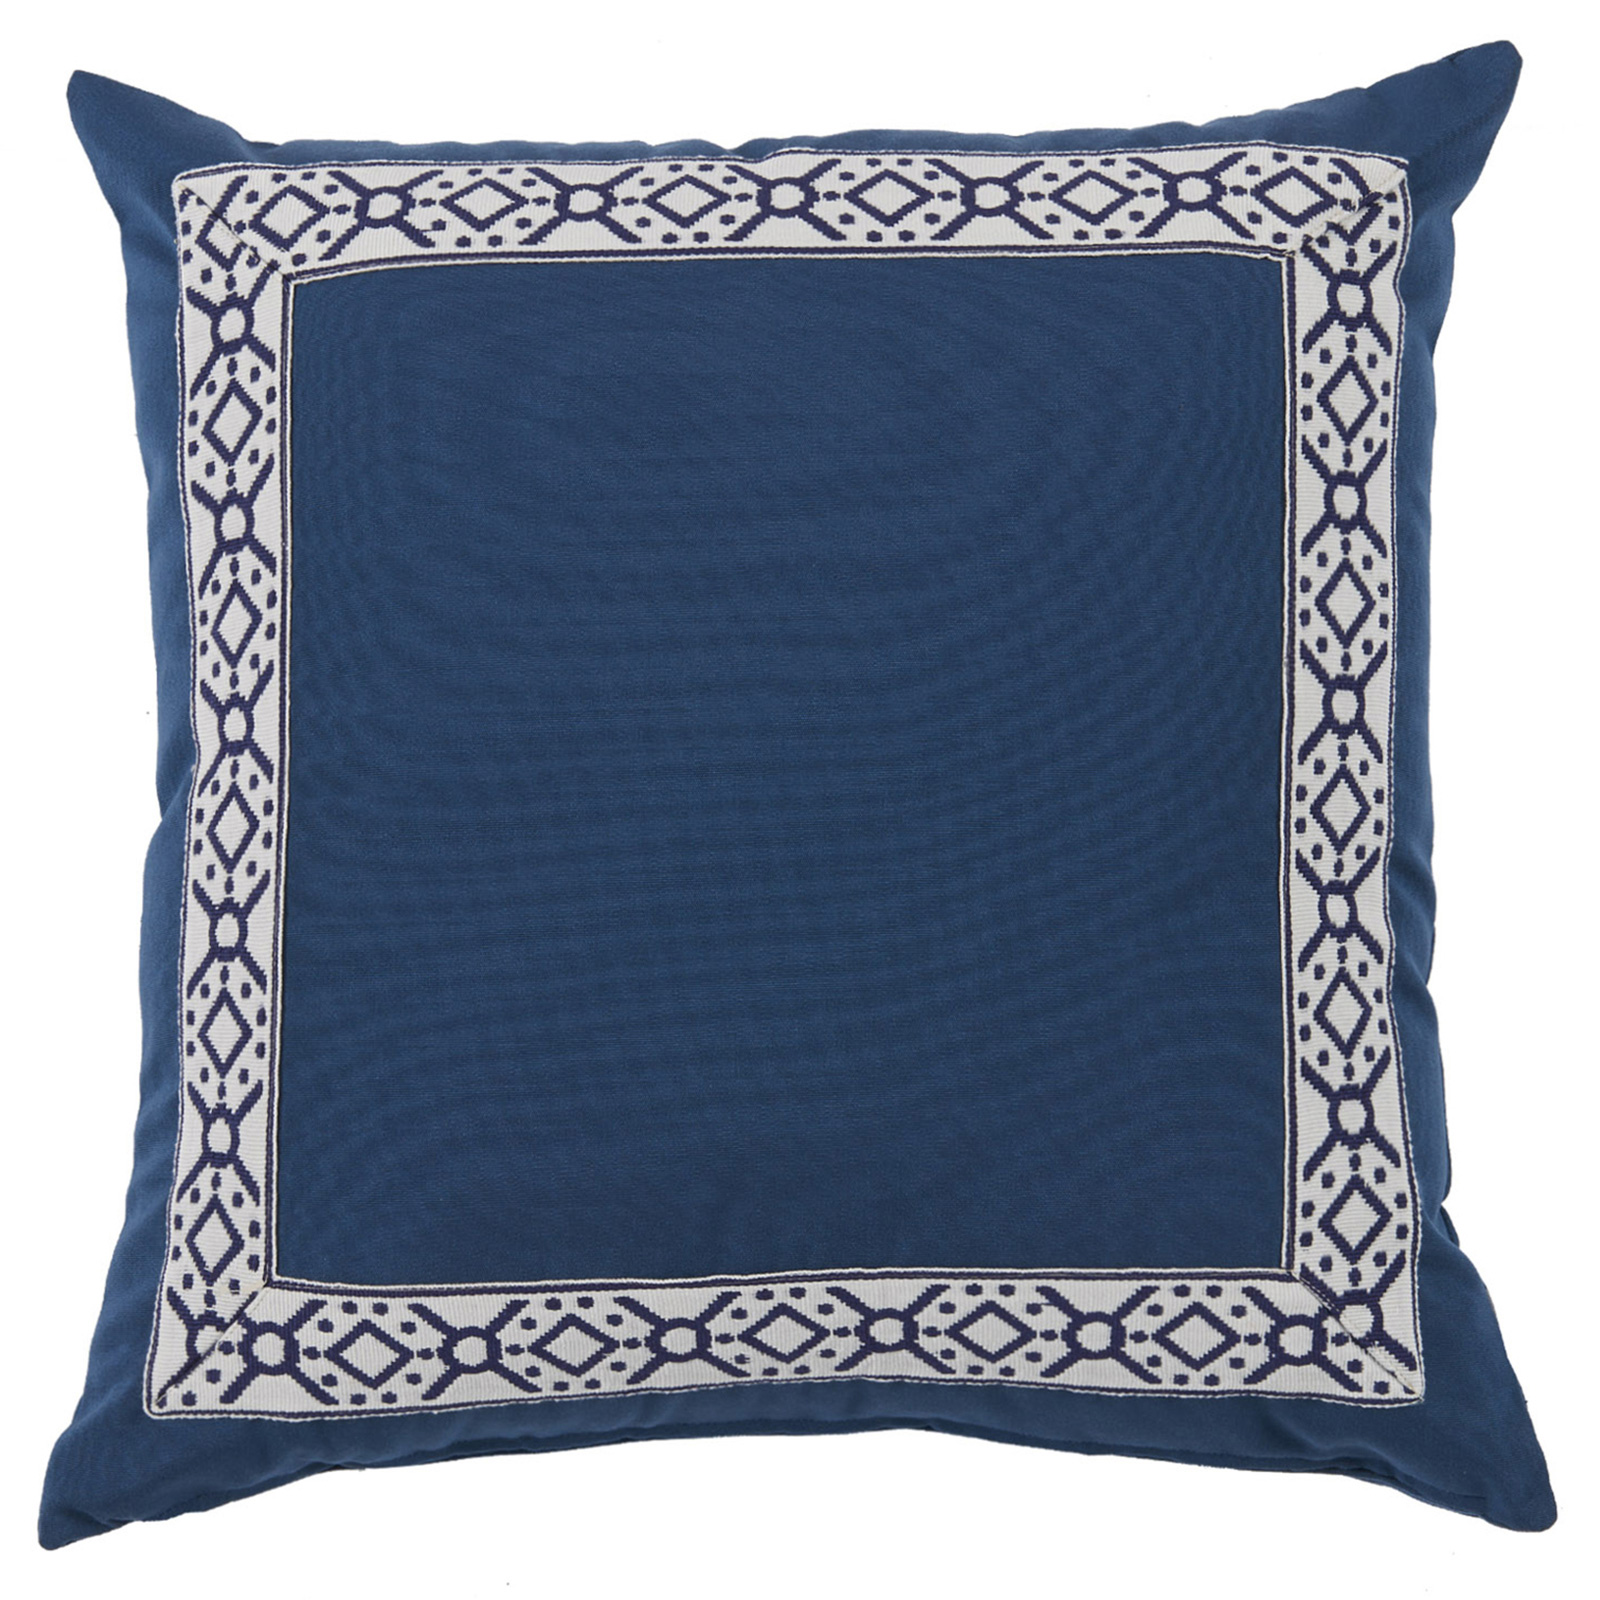 Perri Modern Global Trim Navy Blue Outdoor Pillow - 22x22